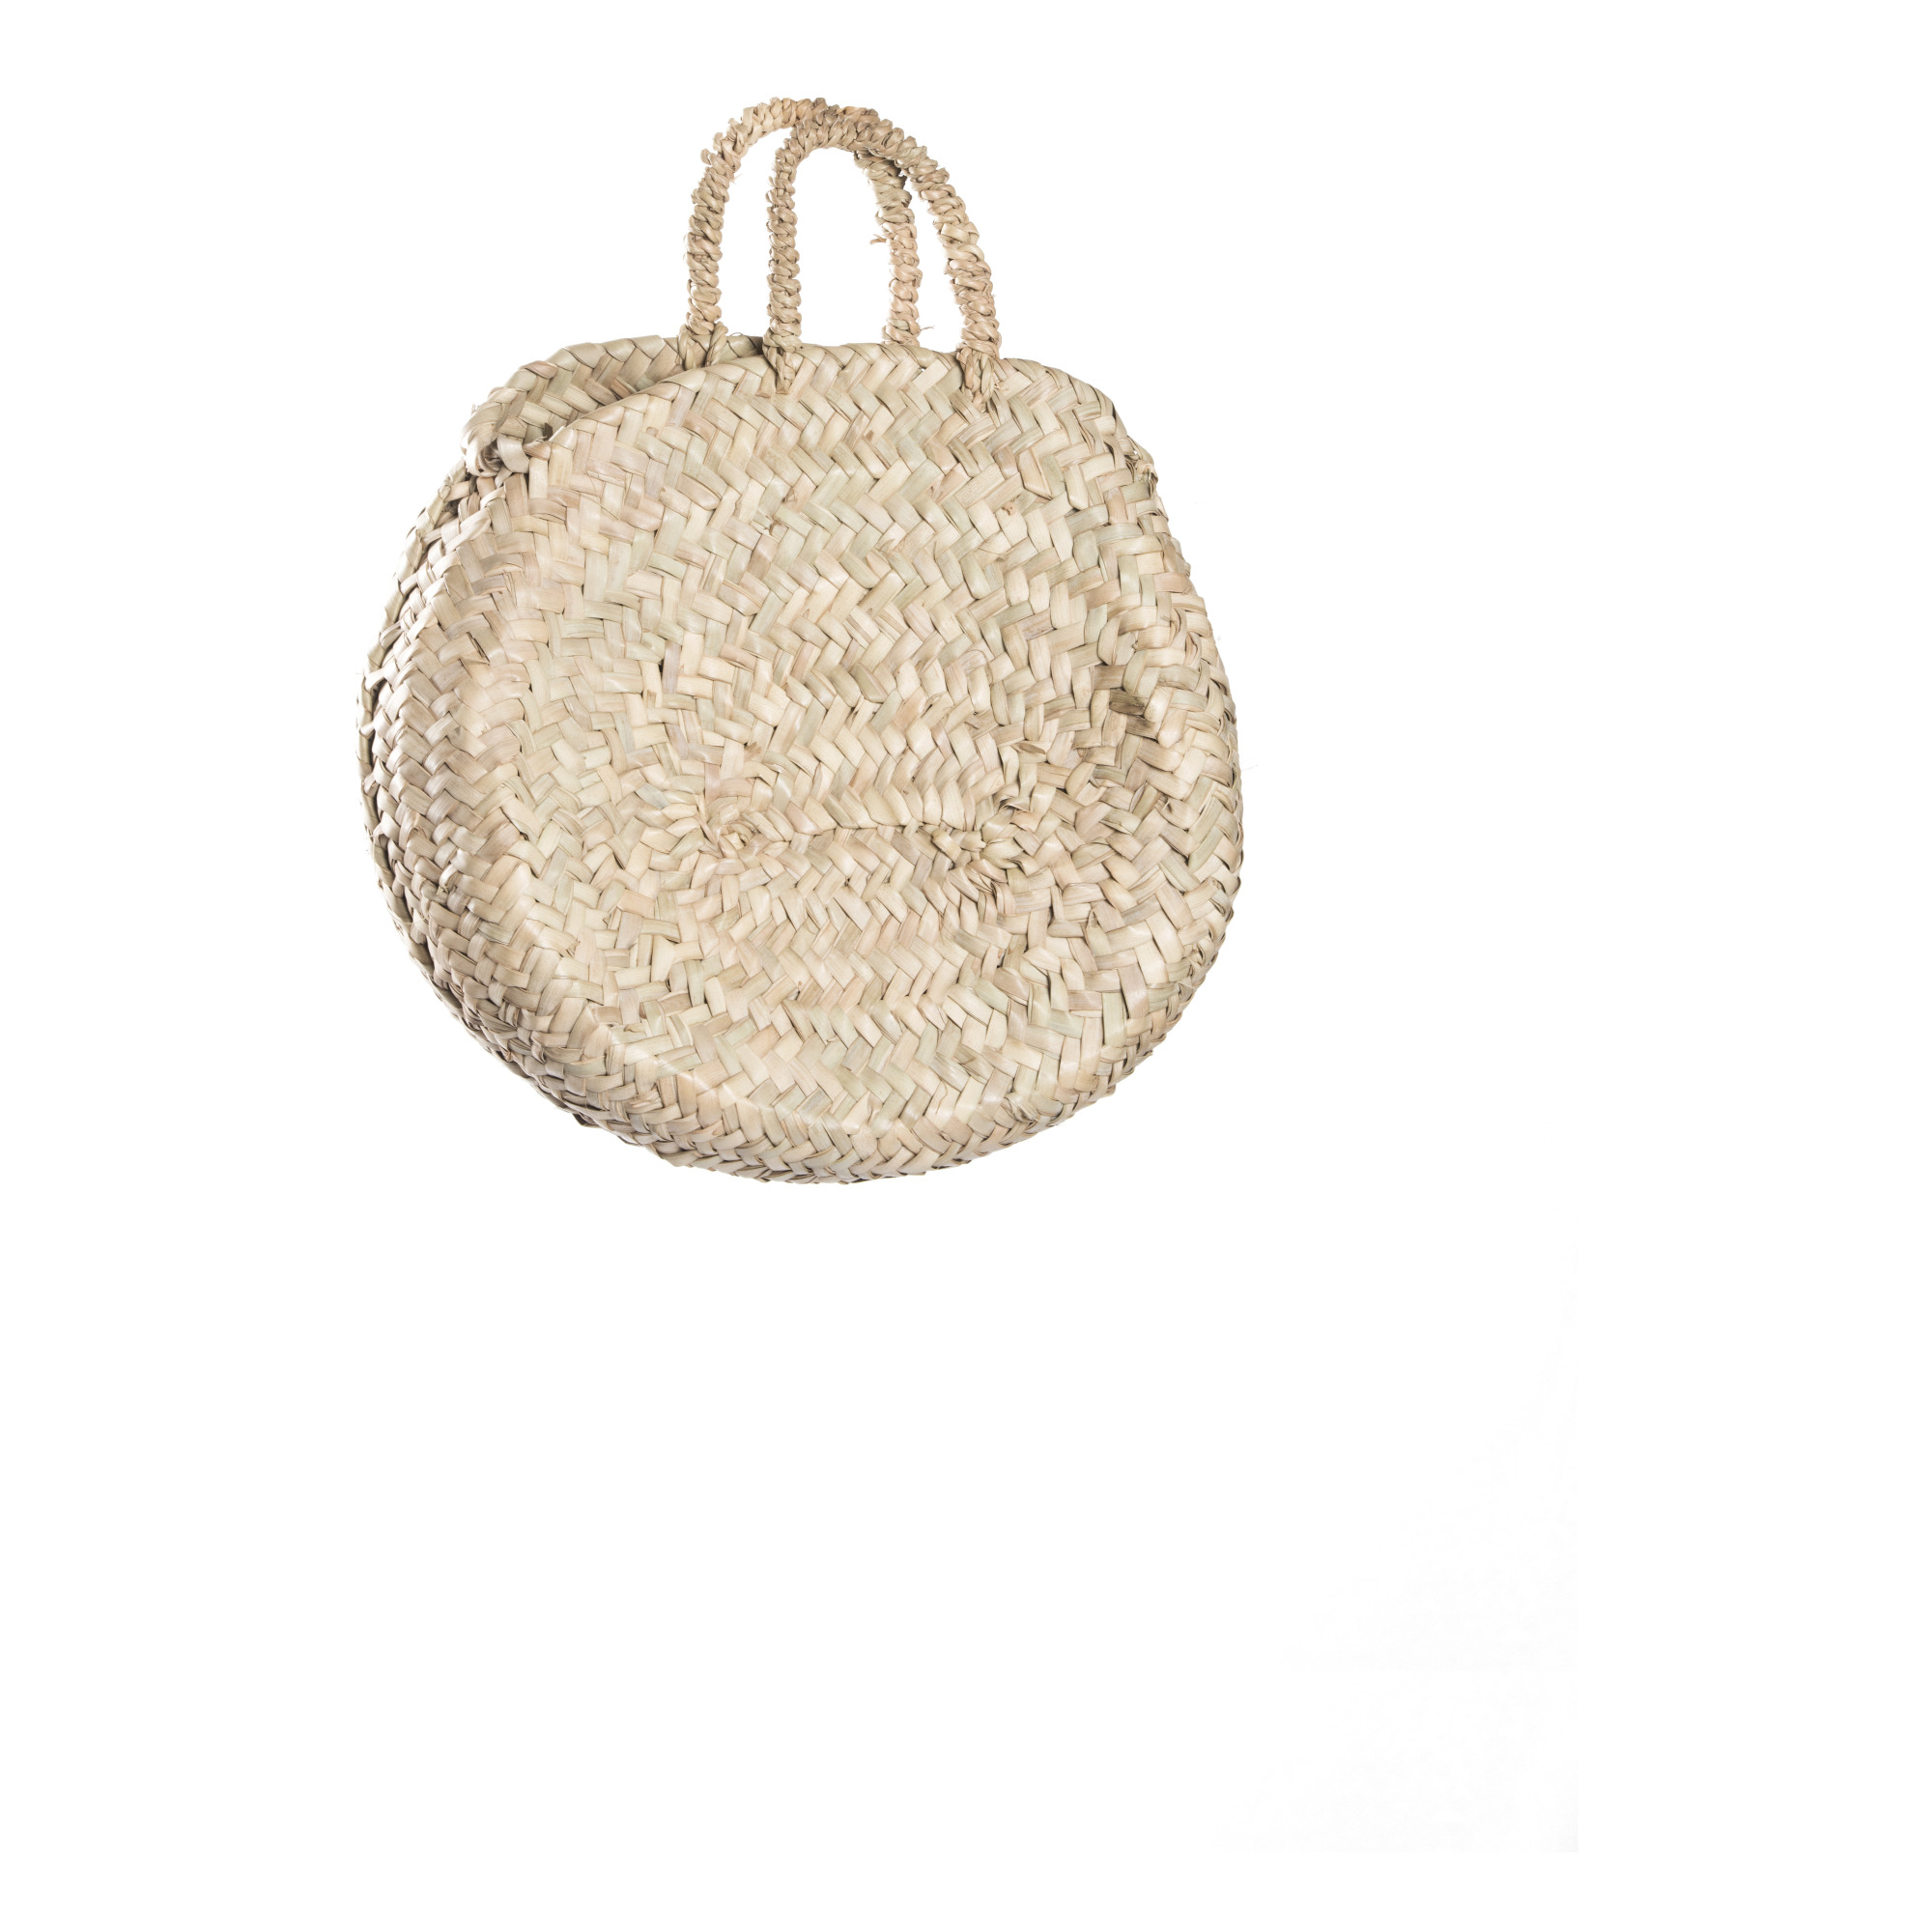 Image of Basket with Handles